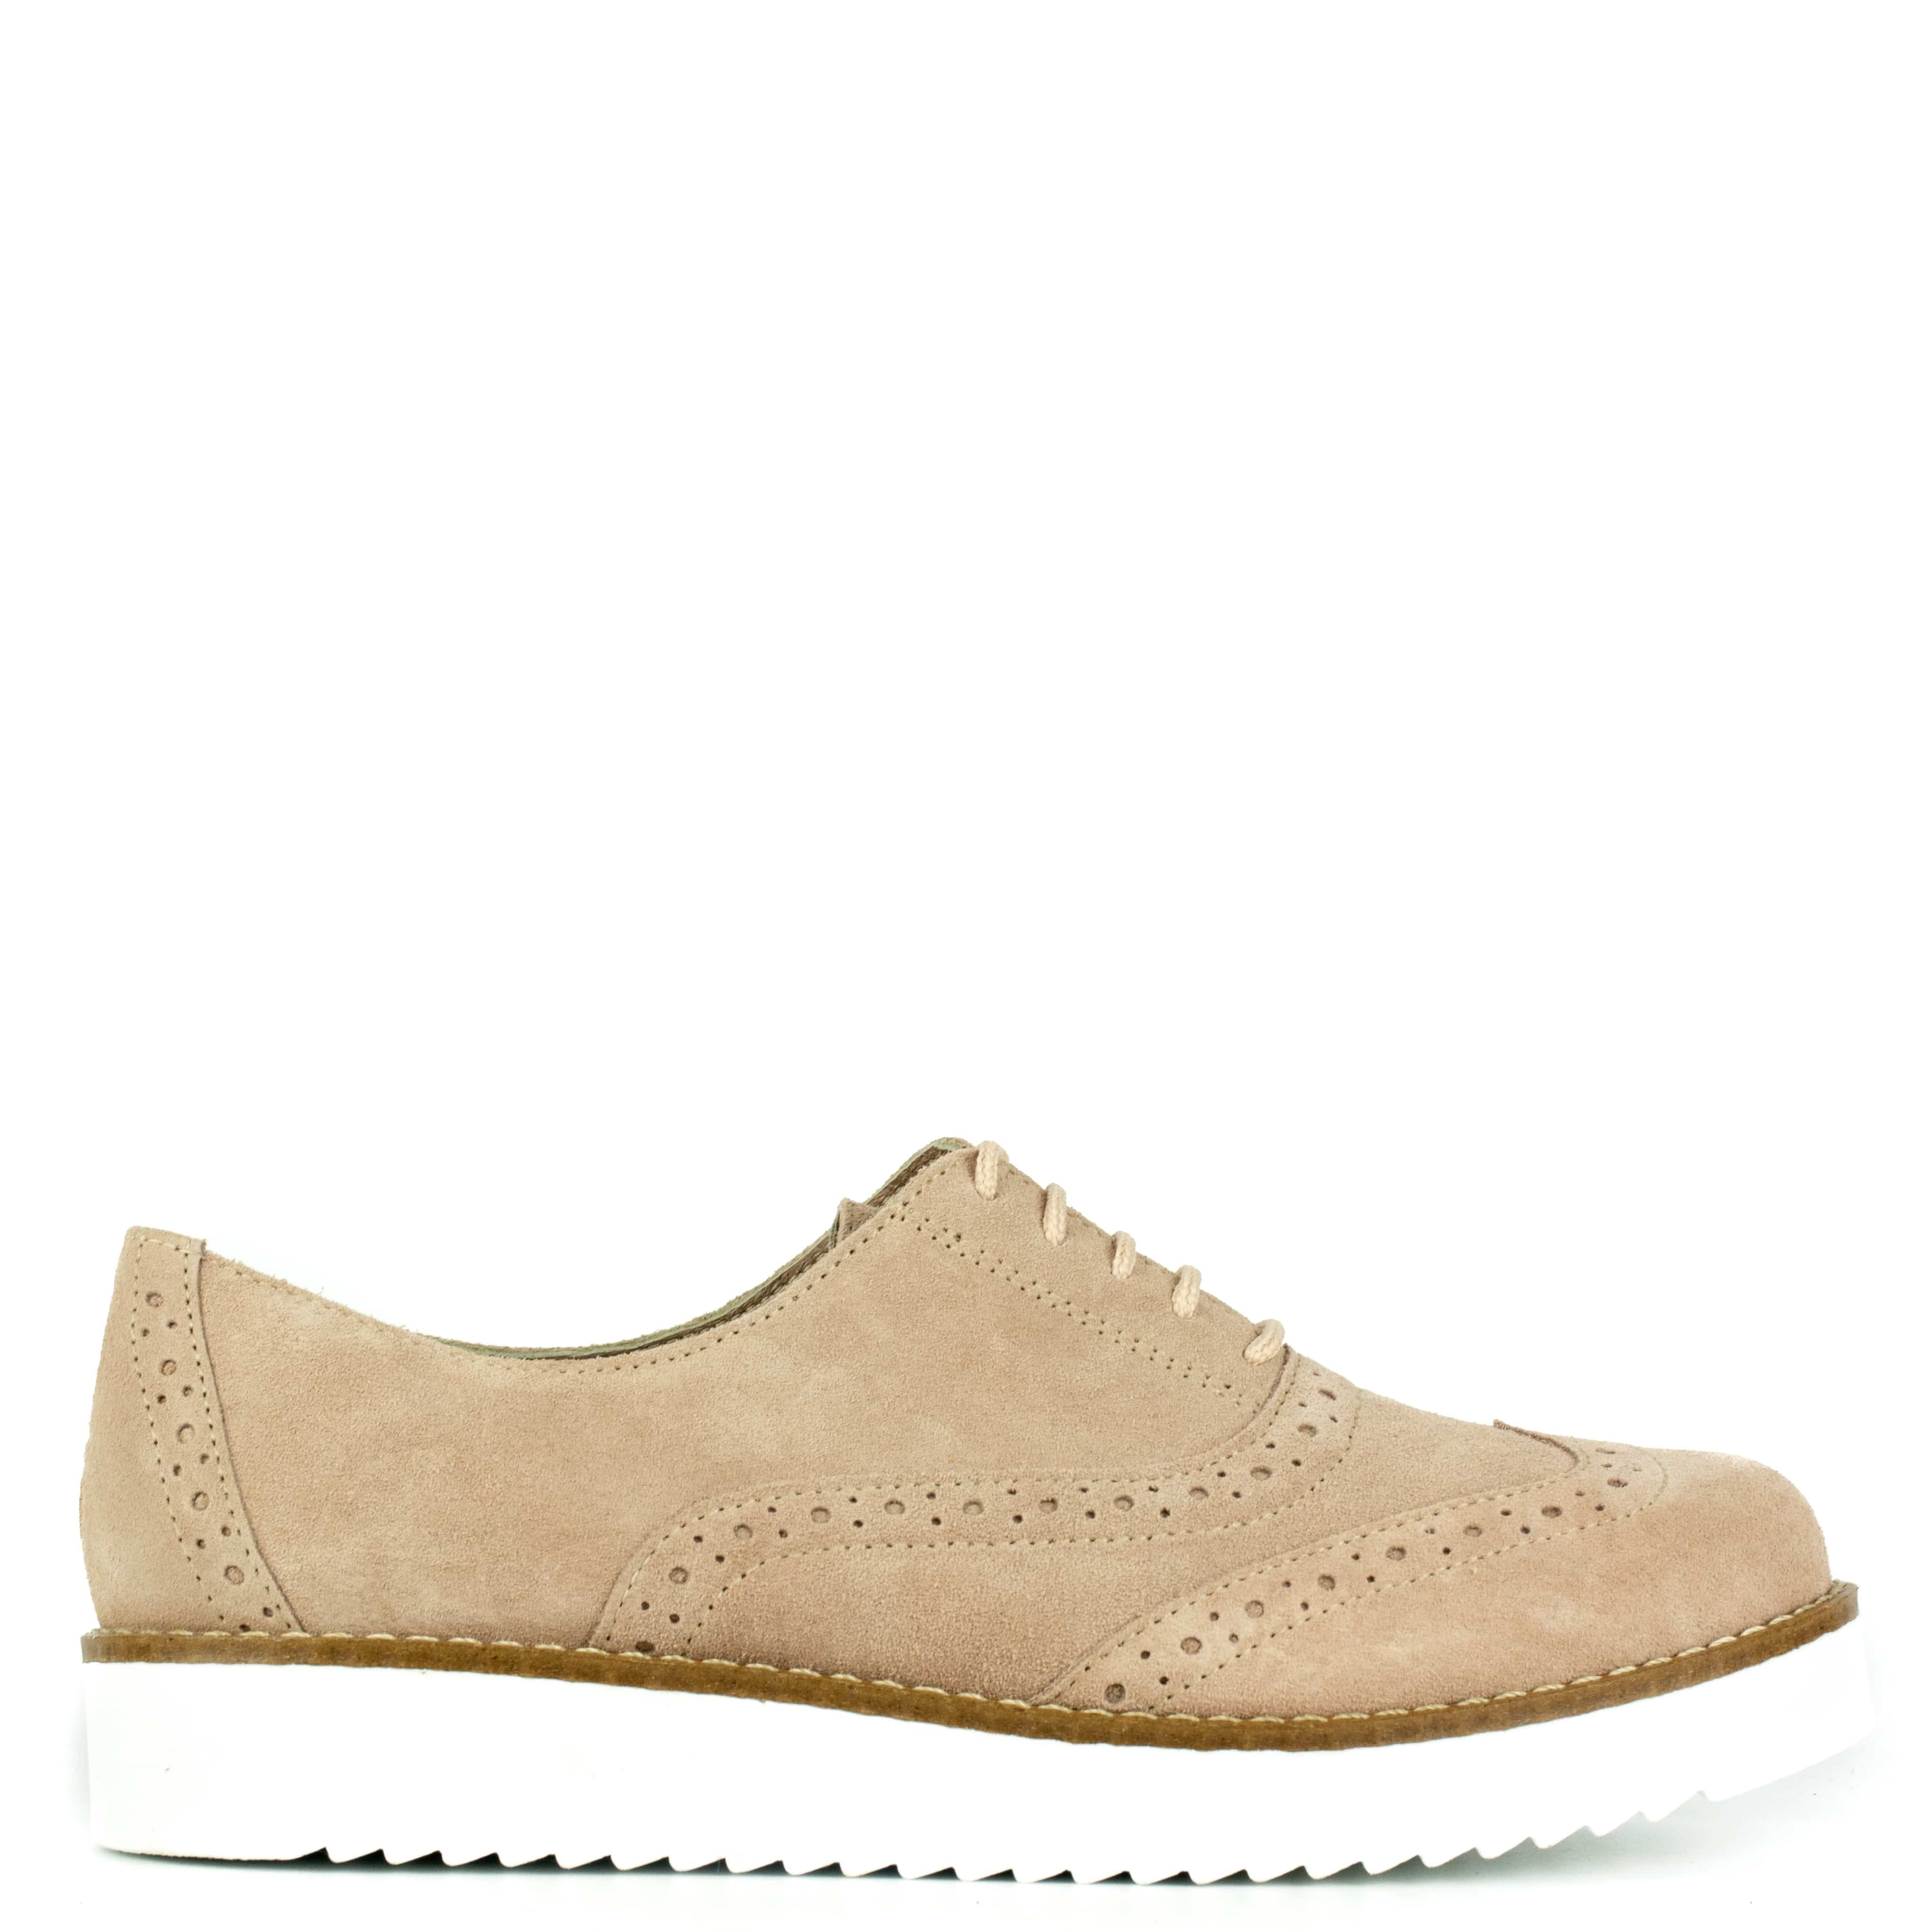 Nude suede leather oxford RC1020-L0P